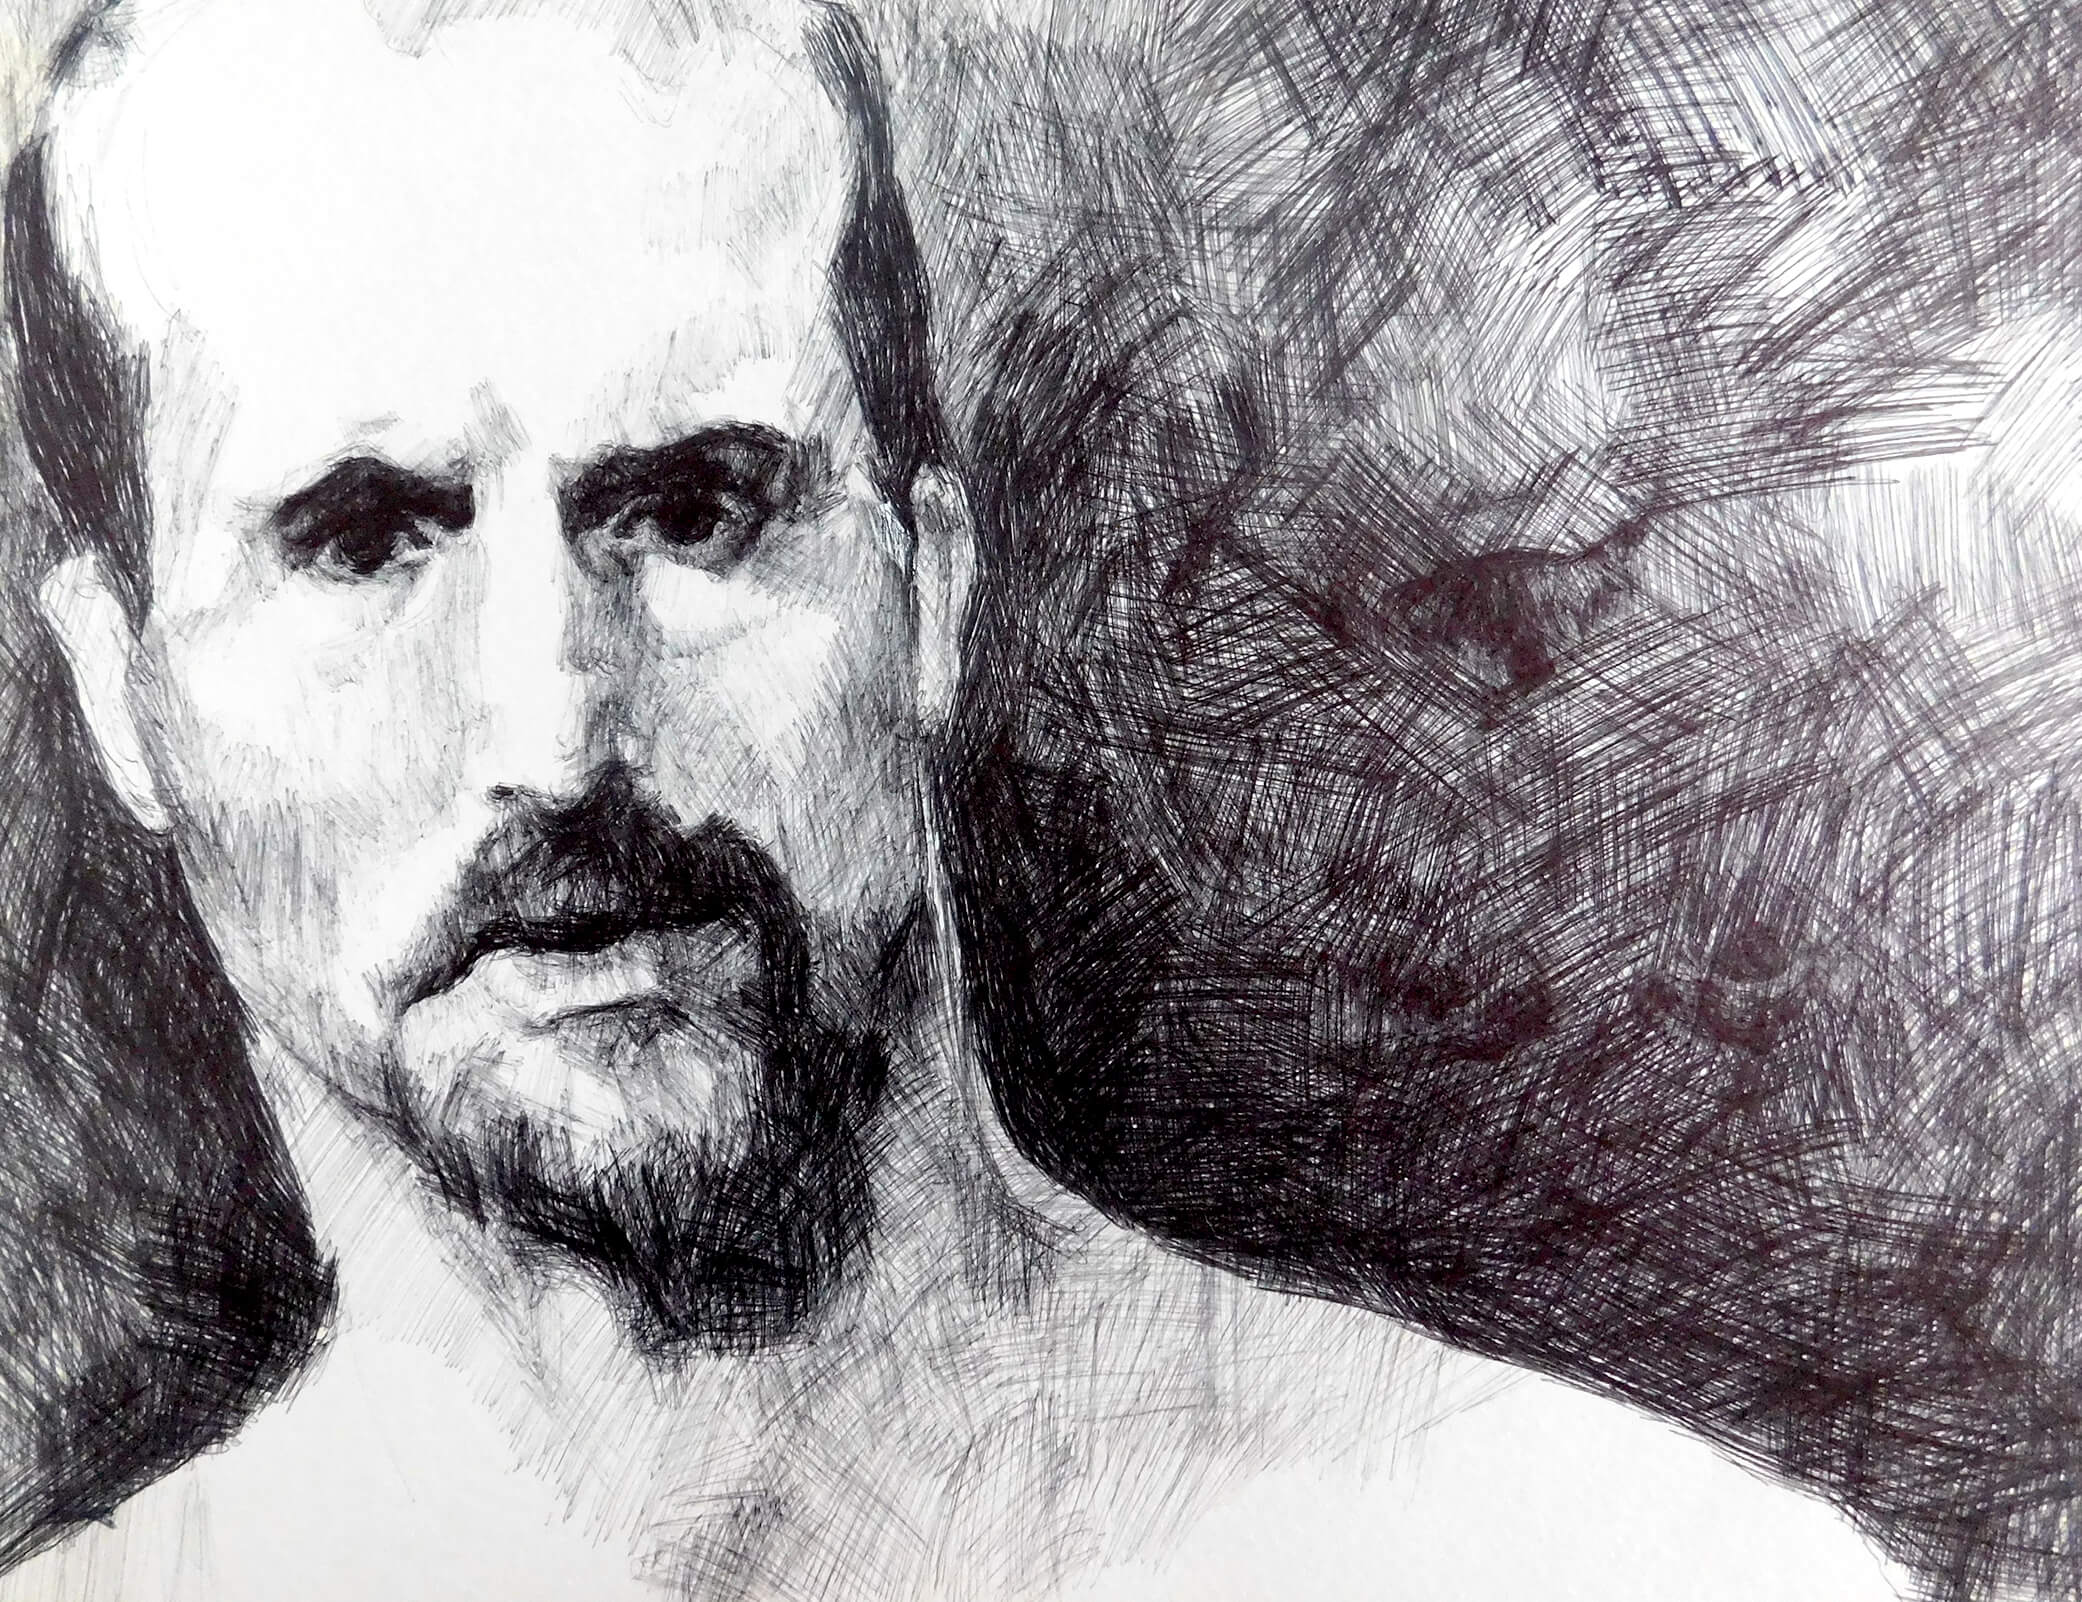 Title: Study based on a photograph of an unknown inmate Media: Ink on paper Size: 24 x 32 x 0.1 cm Year: 2005